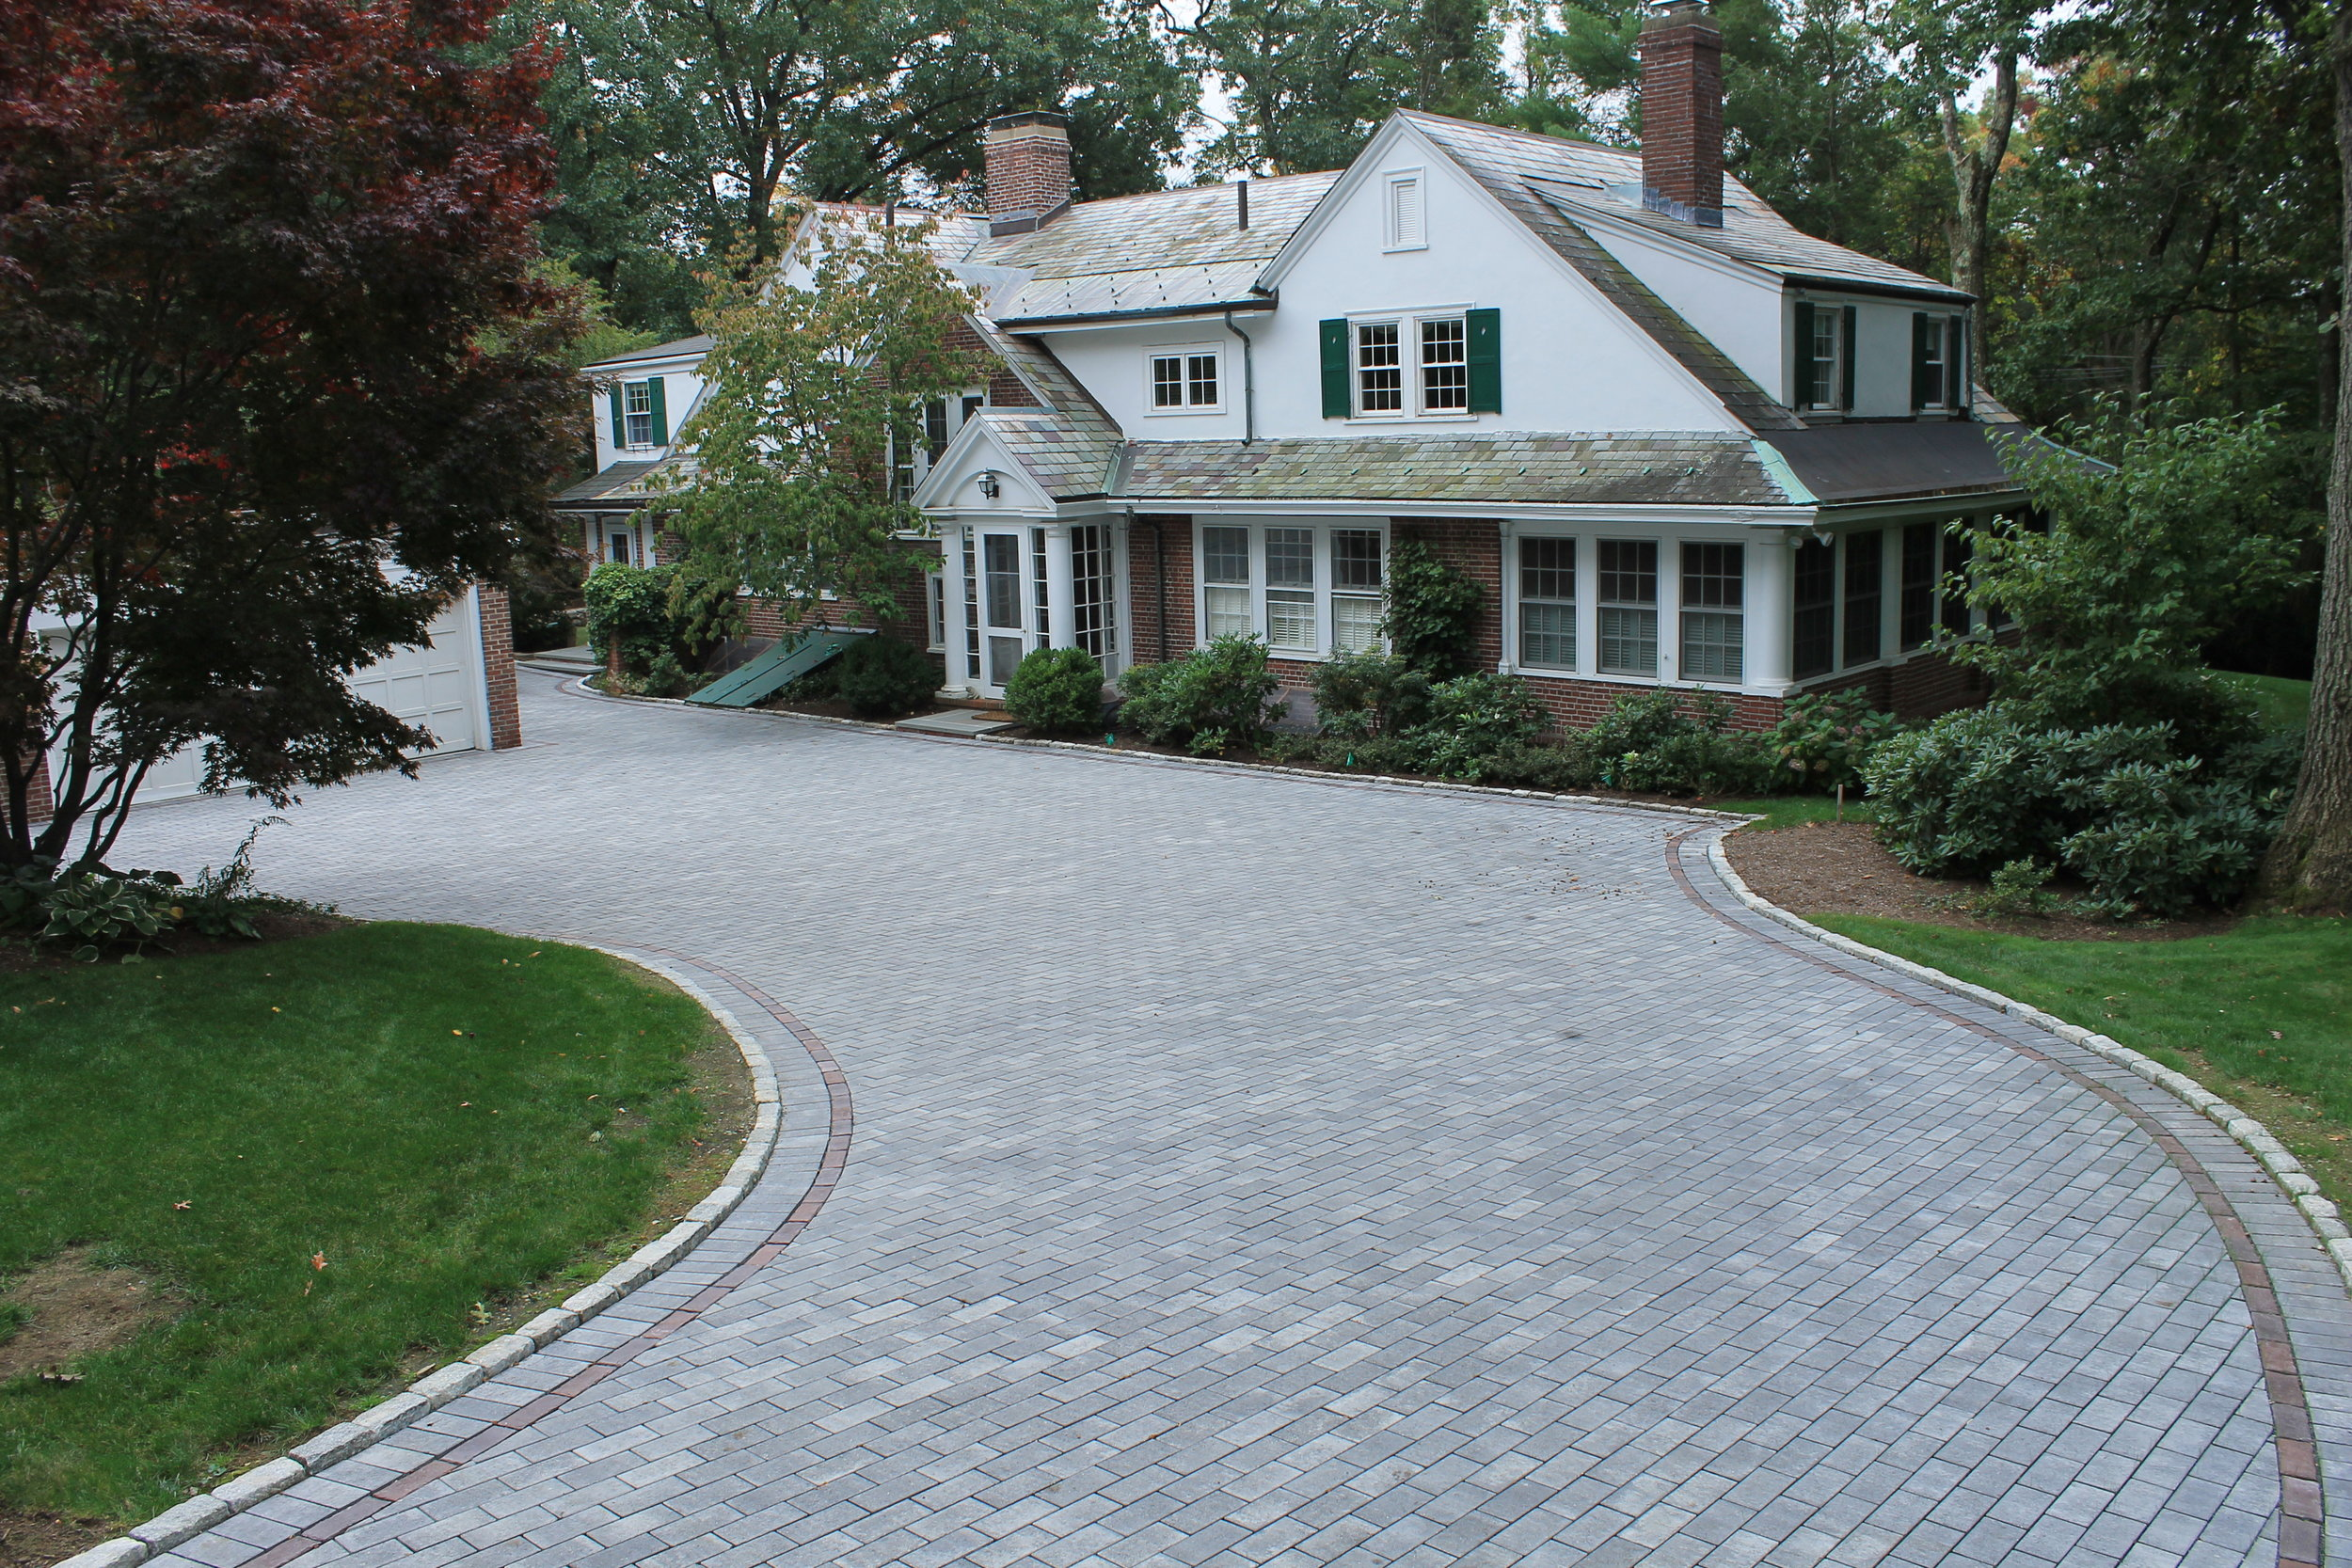 Merge Style and Longevity With Concrete Driveway Pavers in Lexington, MA